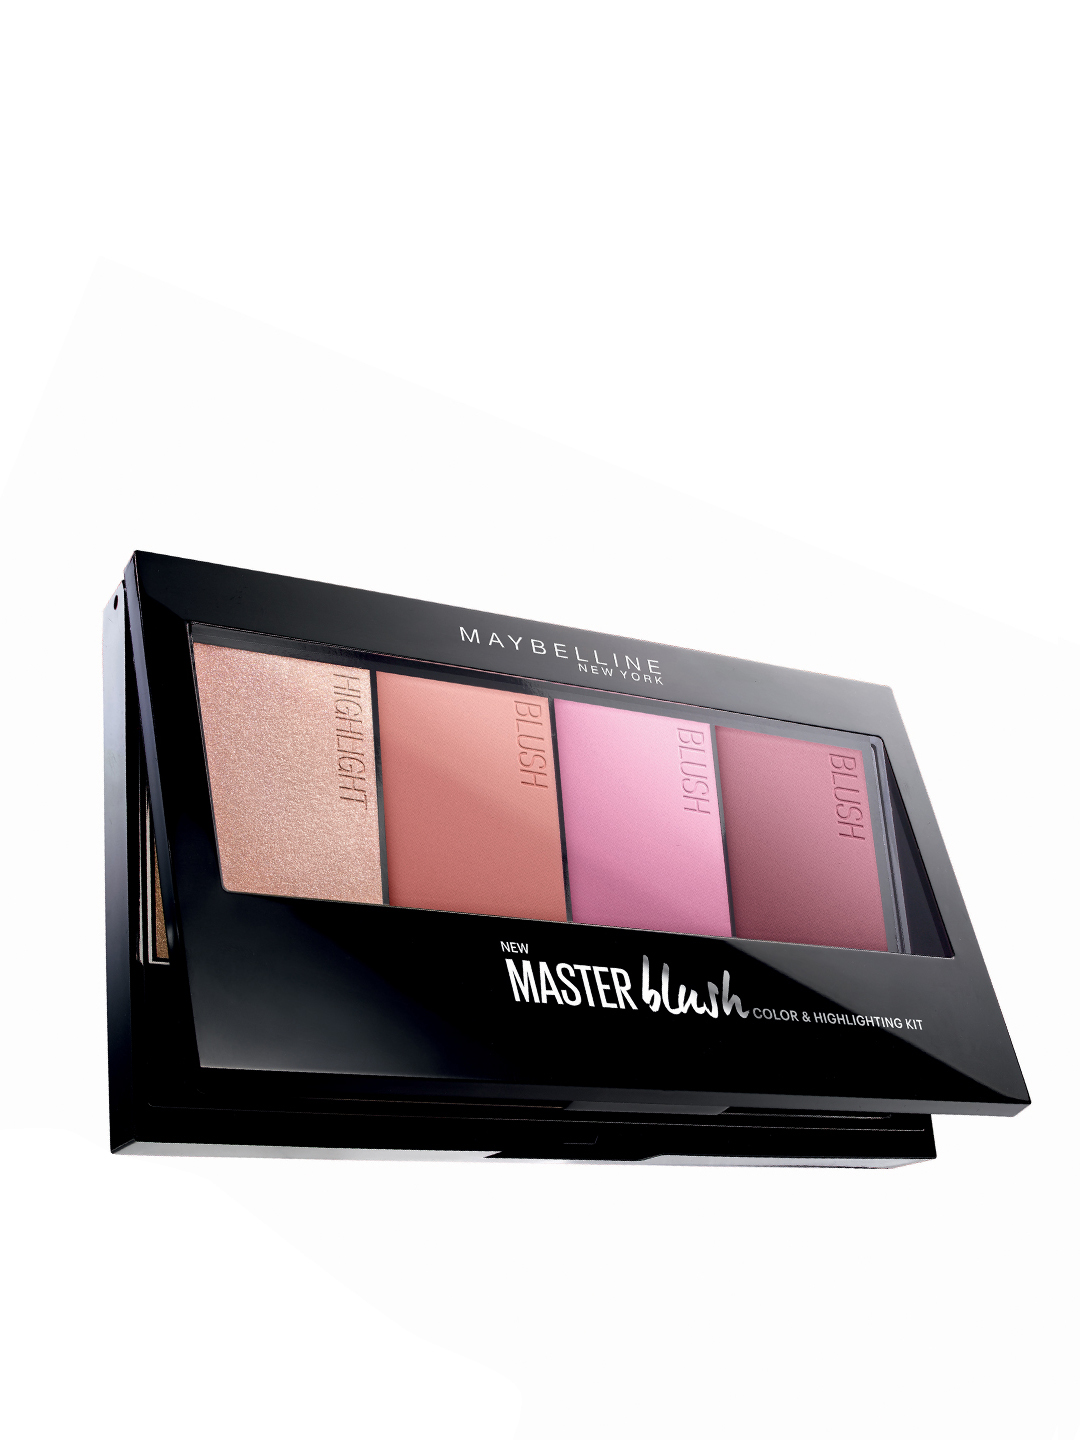 Maybelline Face Studio Master Colour & Highlight Kit Price in India